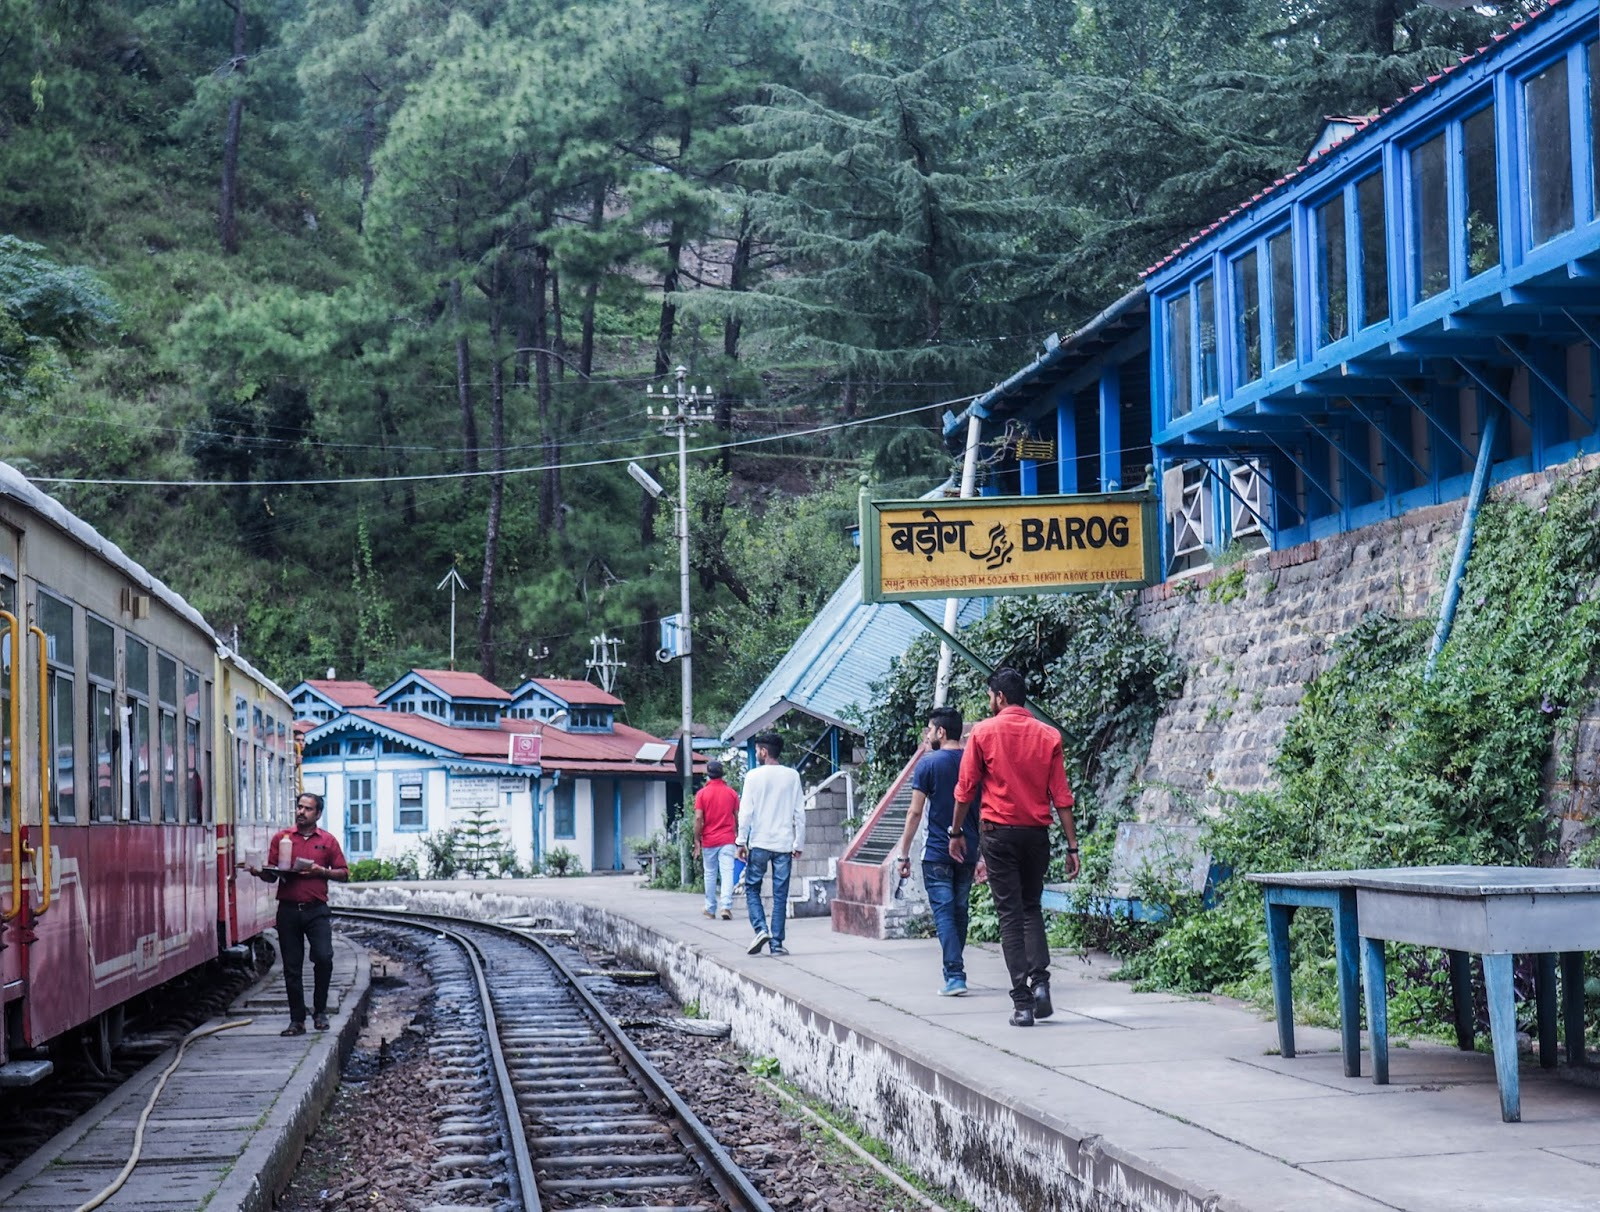 Intia, India, Kalka, Shimla, rautatie, railway, Northern India, Pohjois-Intia, train trip, junamatka, toy train,